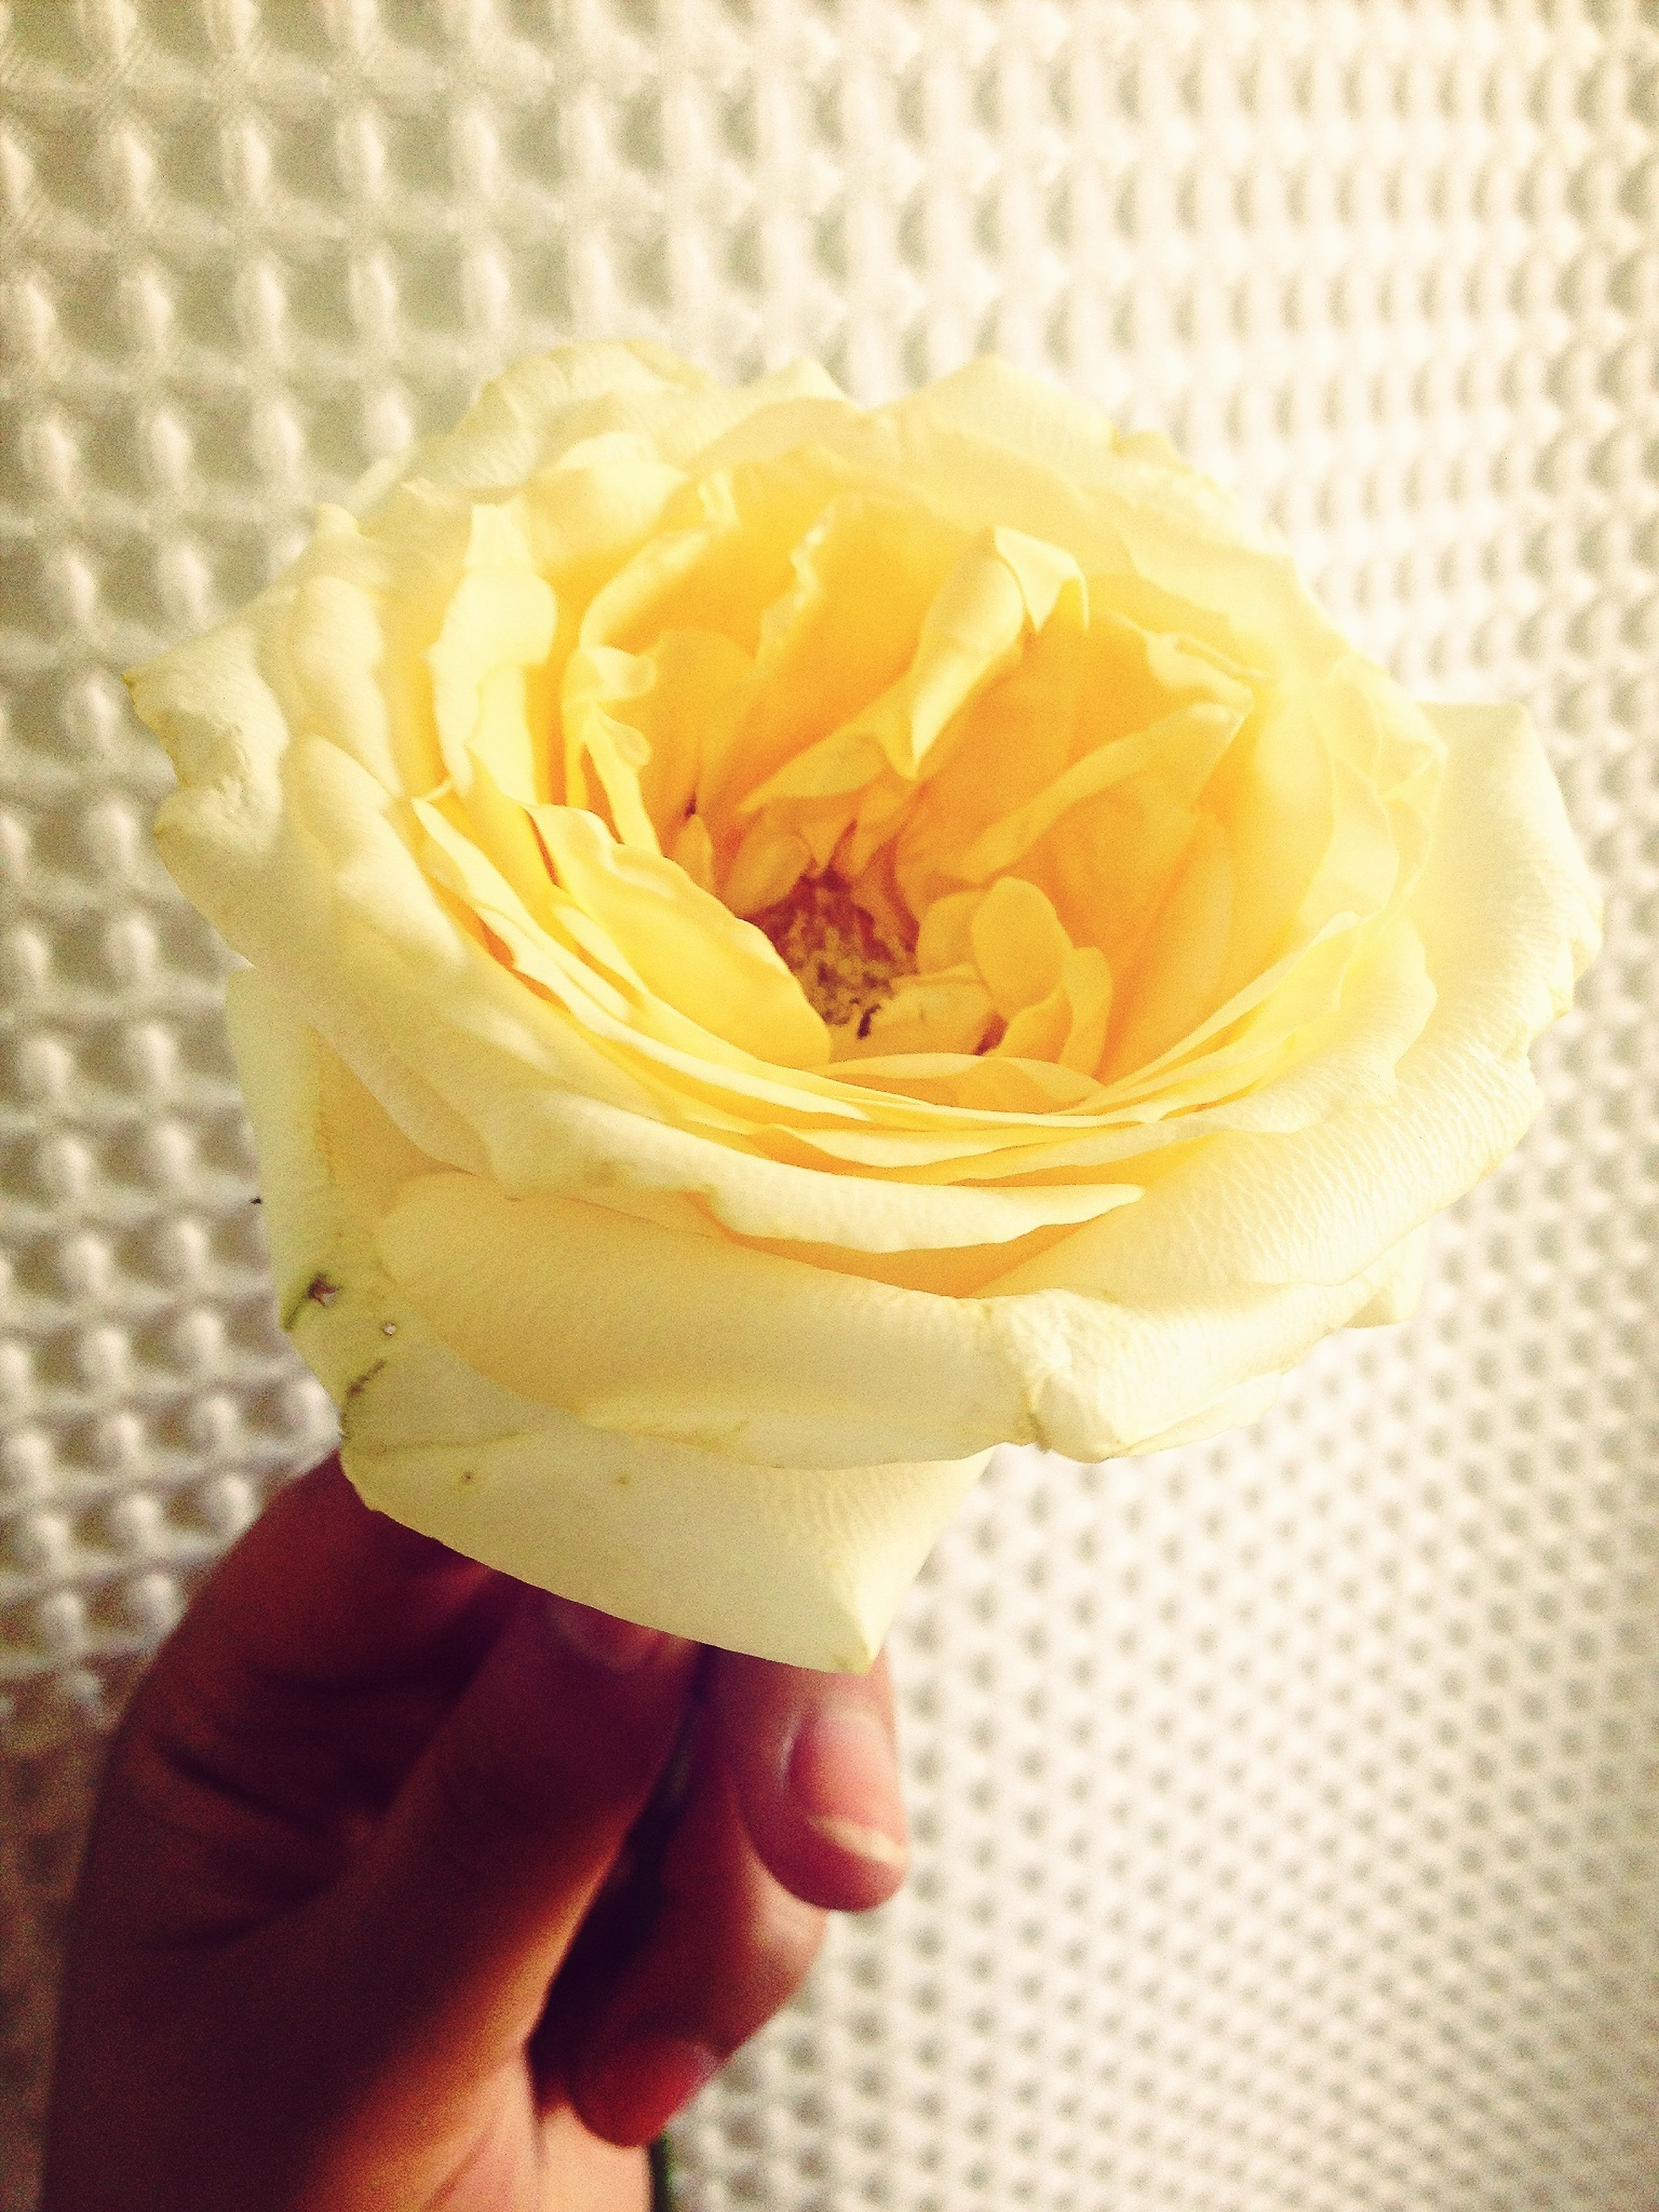 flower, person, petal, holding, close-up, fragility, indoors, flower head, freshness, single flower, part of, cropped, rose - flower, focus on foreground, human finger, lifestyles, unrecognizable person